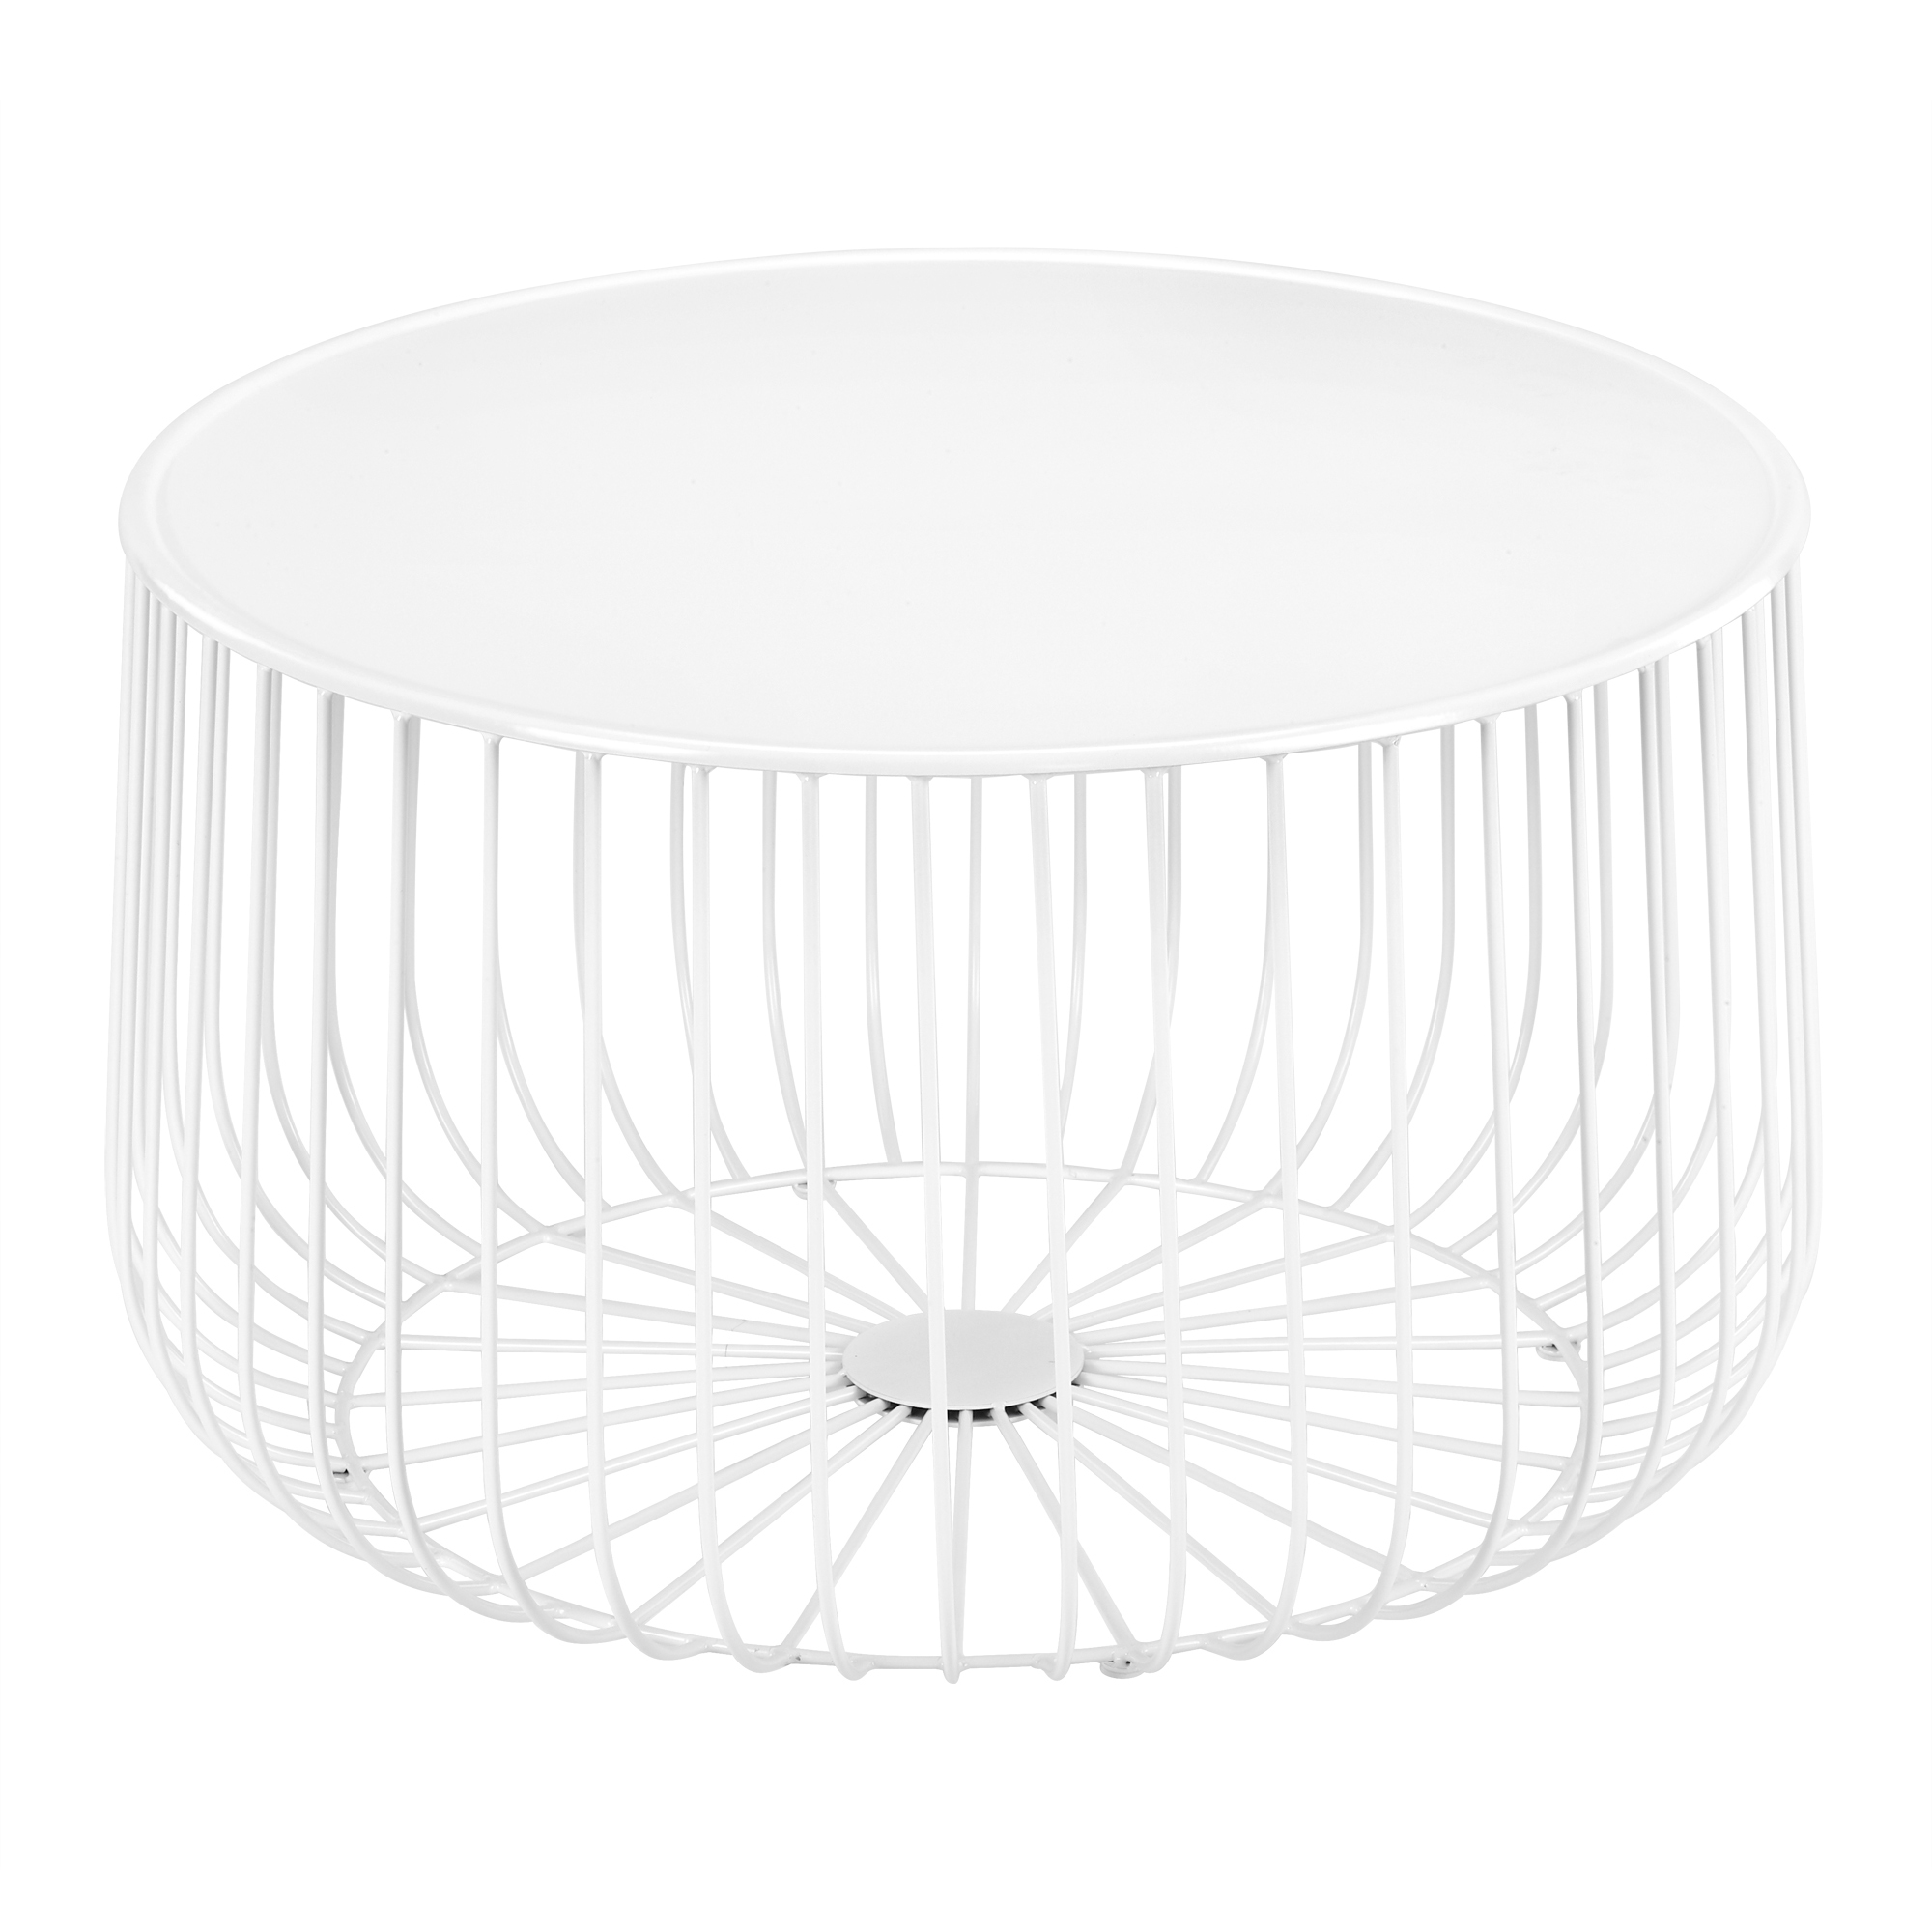 Sku tmpl1003 white trevi wire coffee table is also sometimes listed under the following manufacturer numbers gepawcbk